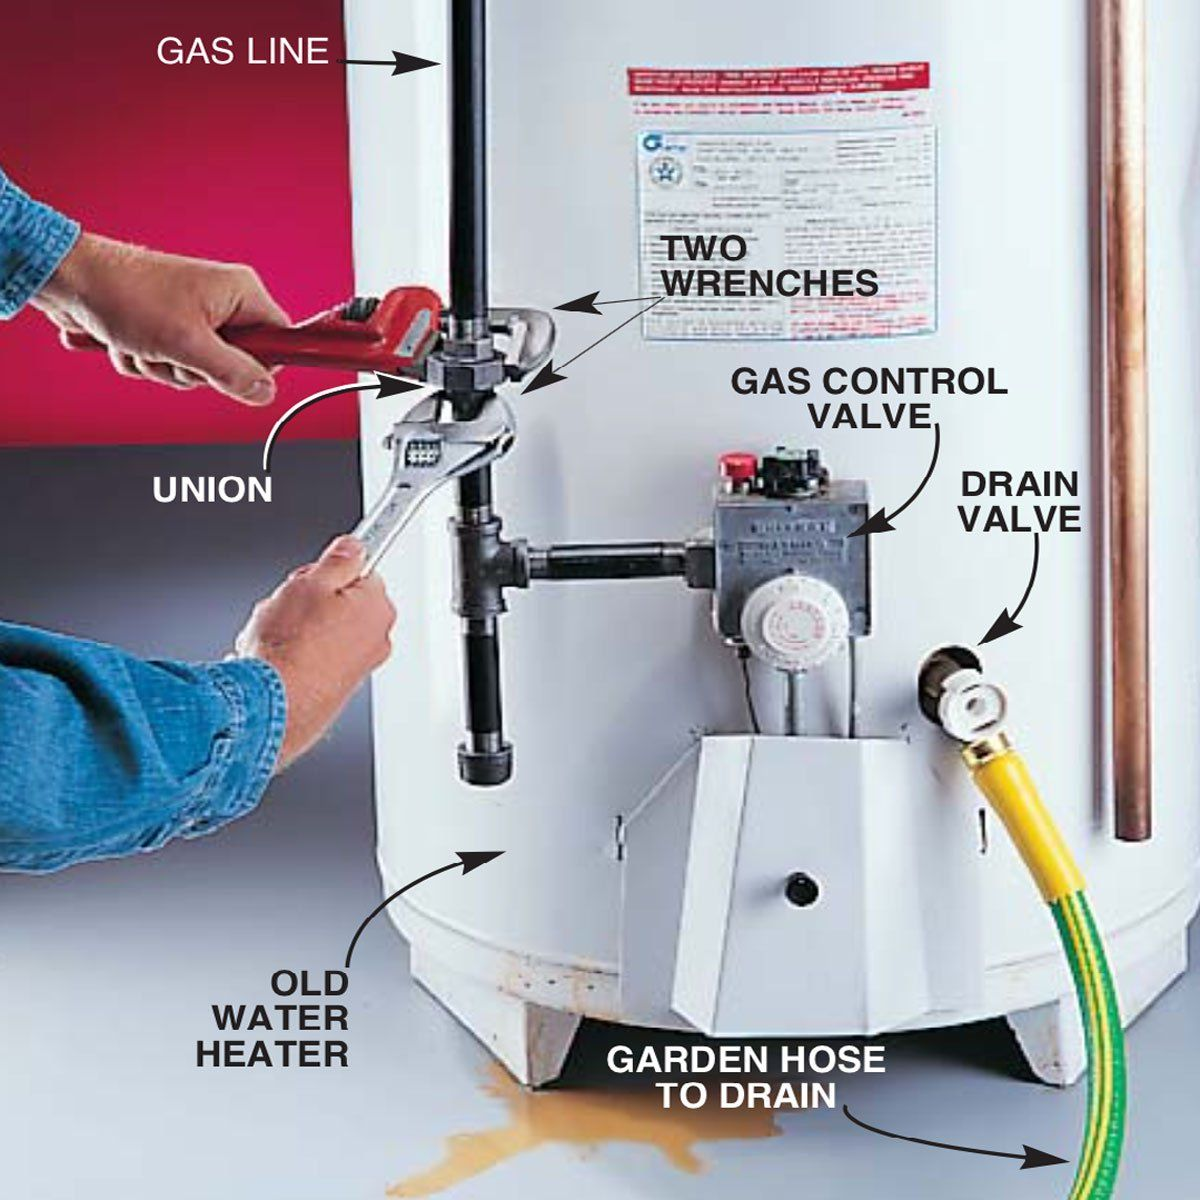 How To Install A Hot Water Heater Family Handyman Water Heater Installation Water Heater Hot Water Heater Repair